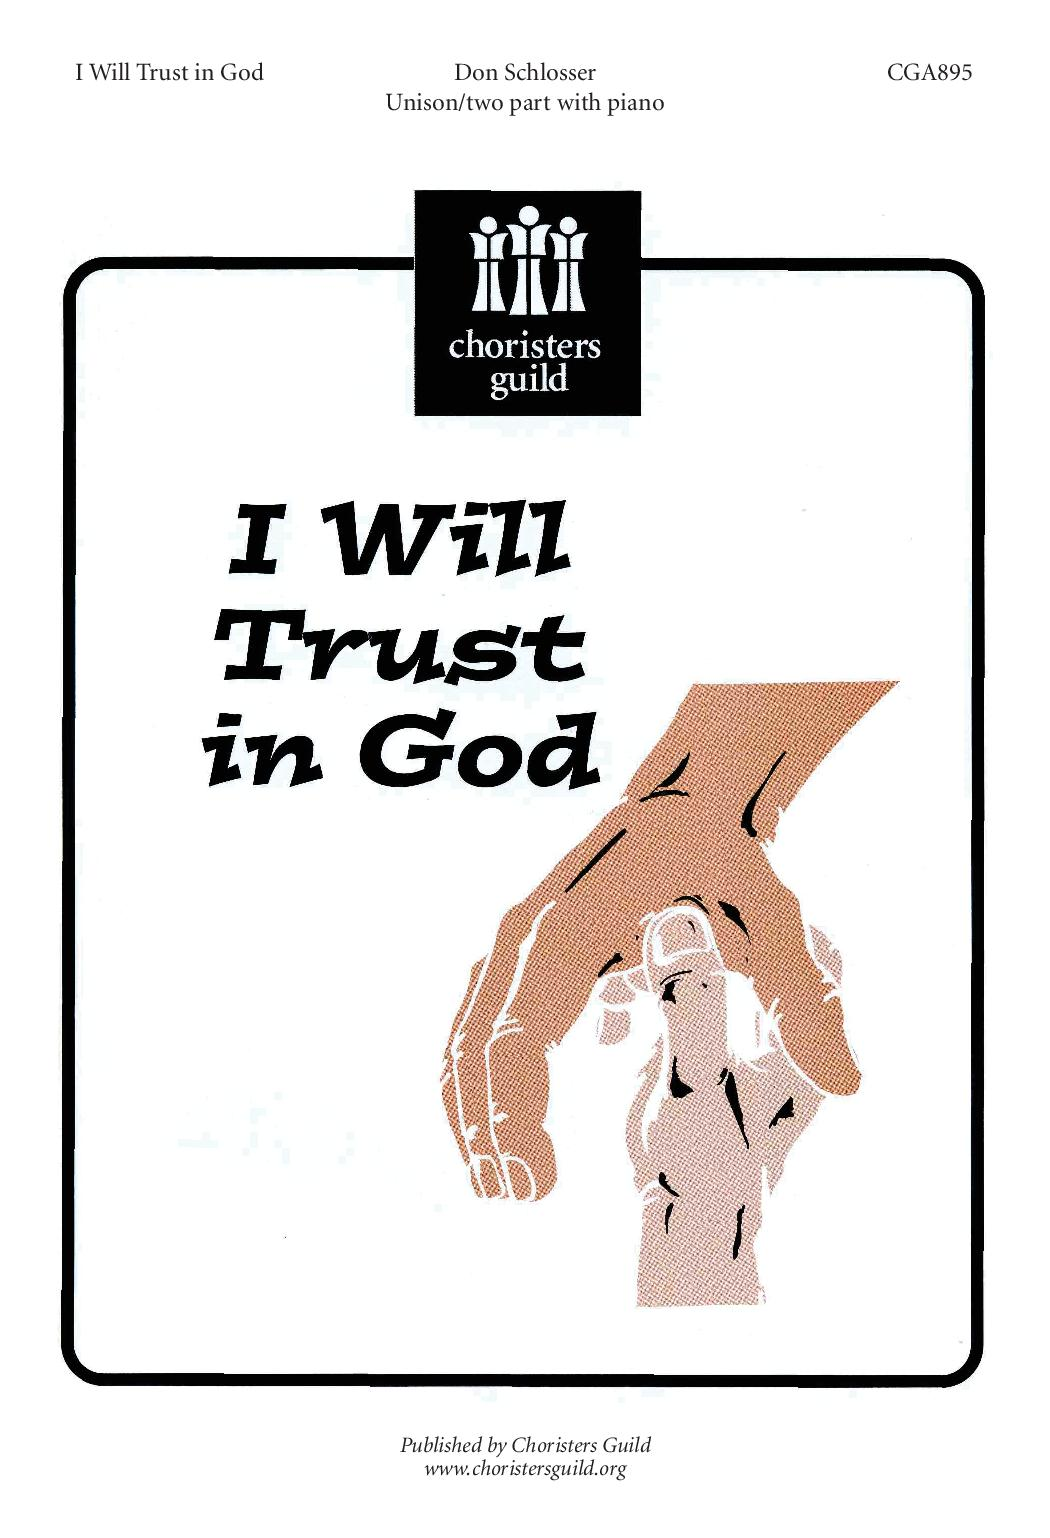 I Will Trust in God